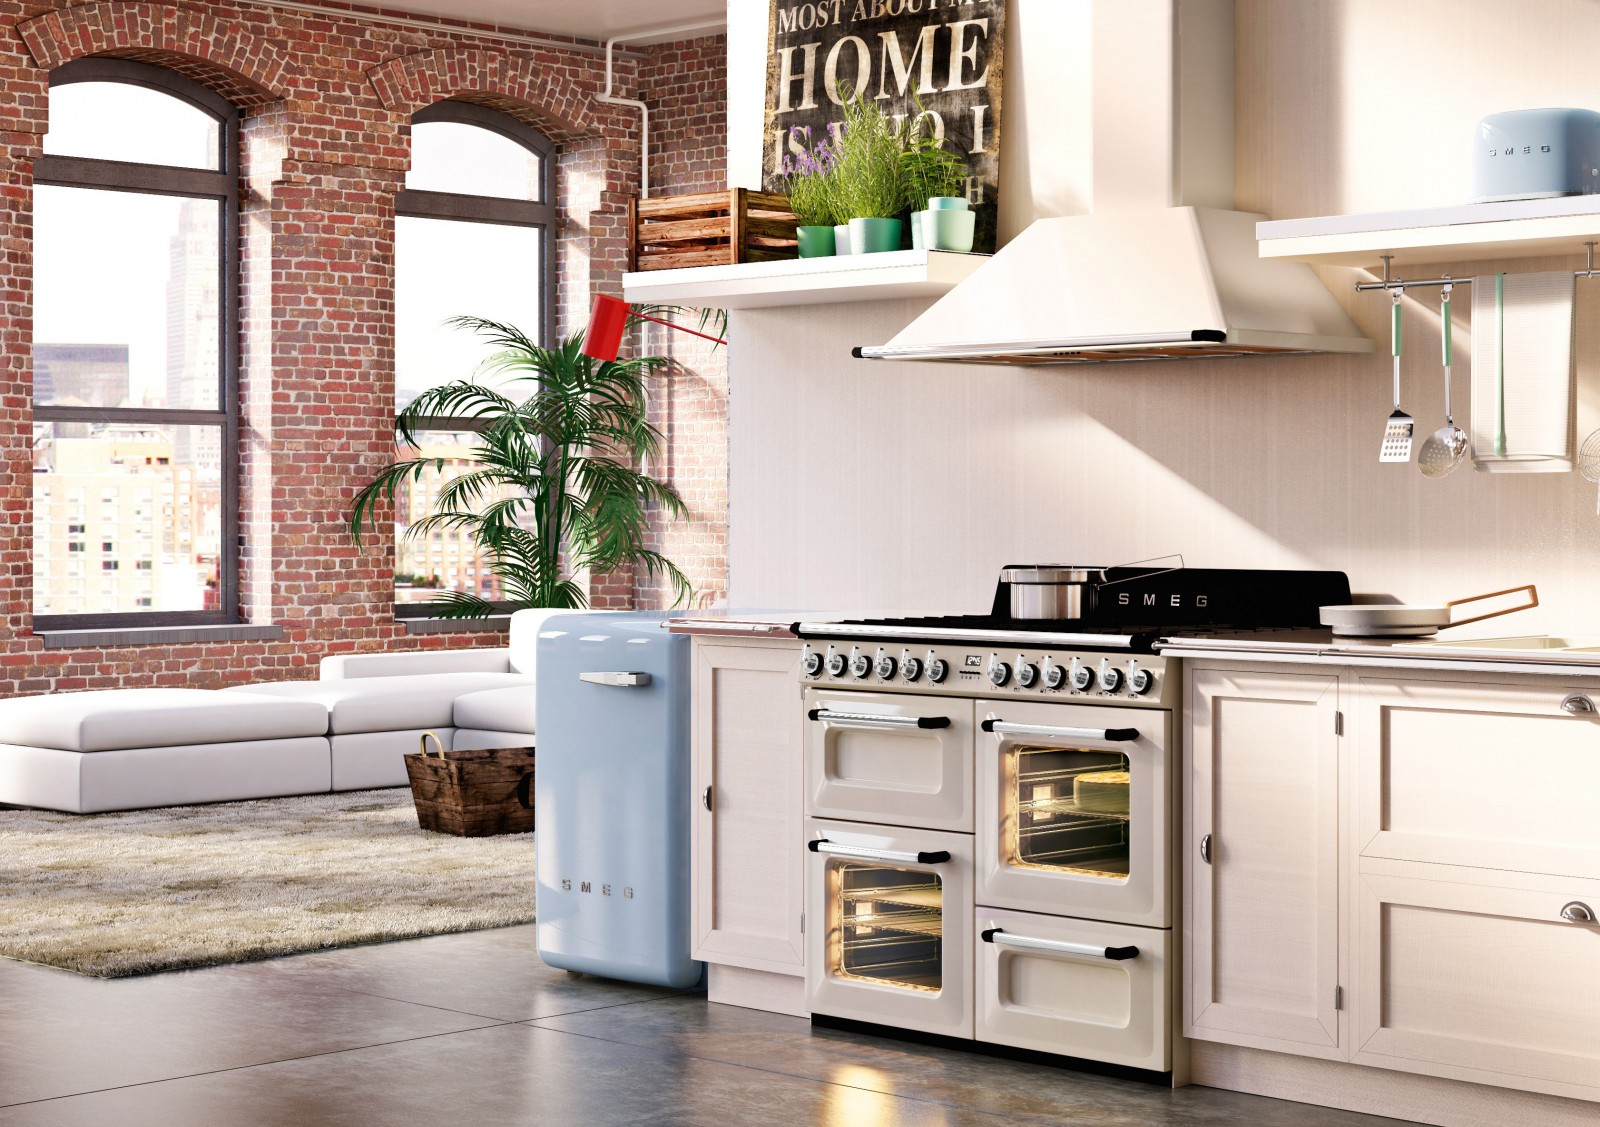 Smeg Hood Offer at Appliance City